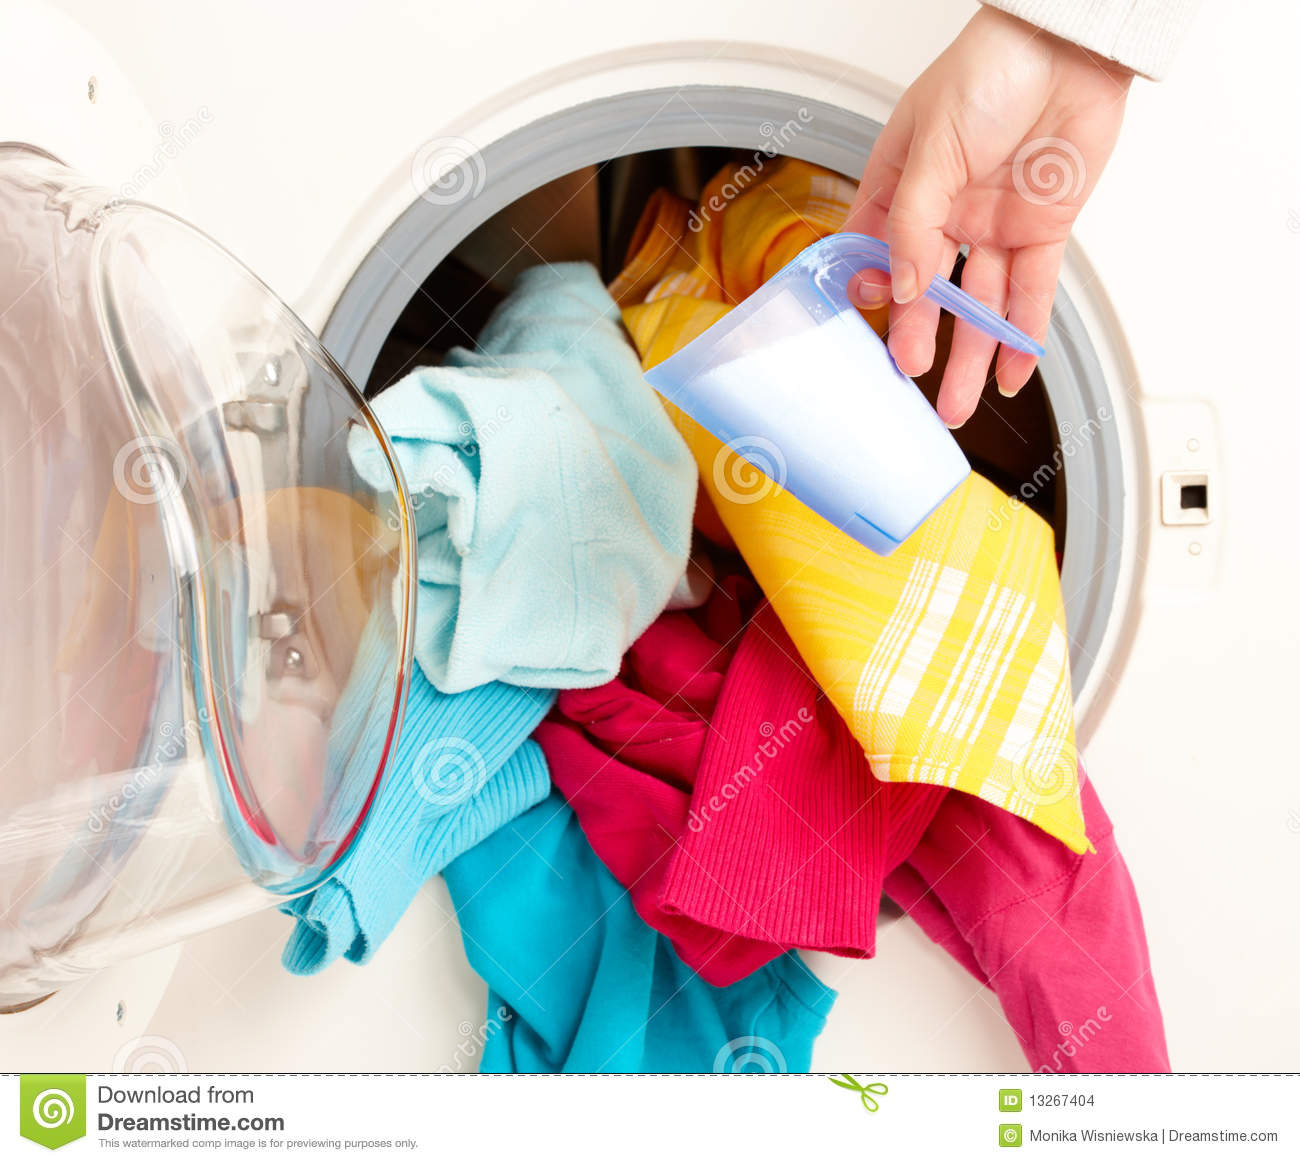 Washing Machine With Clothes ~ Washing machine with colorful clothes stock photo image